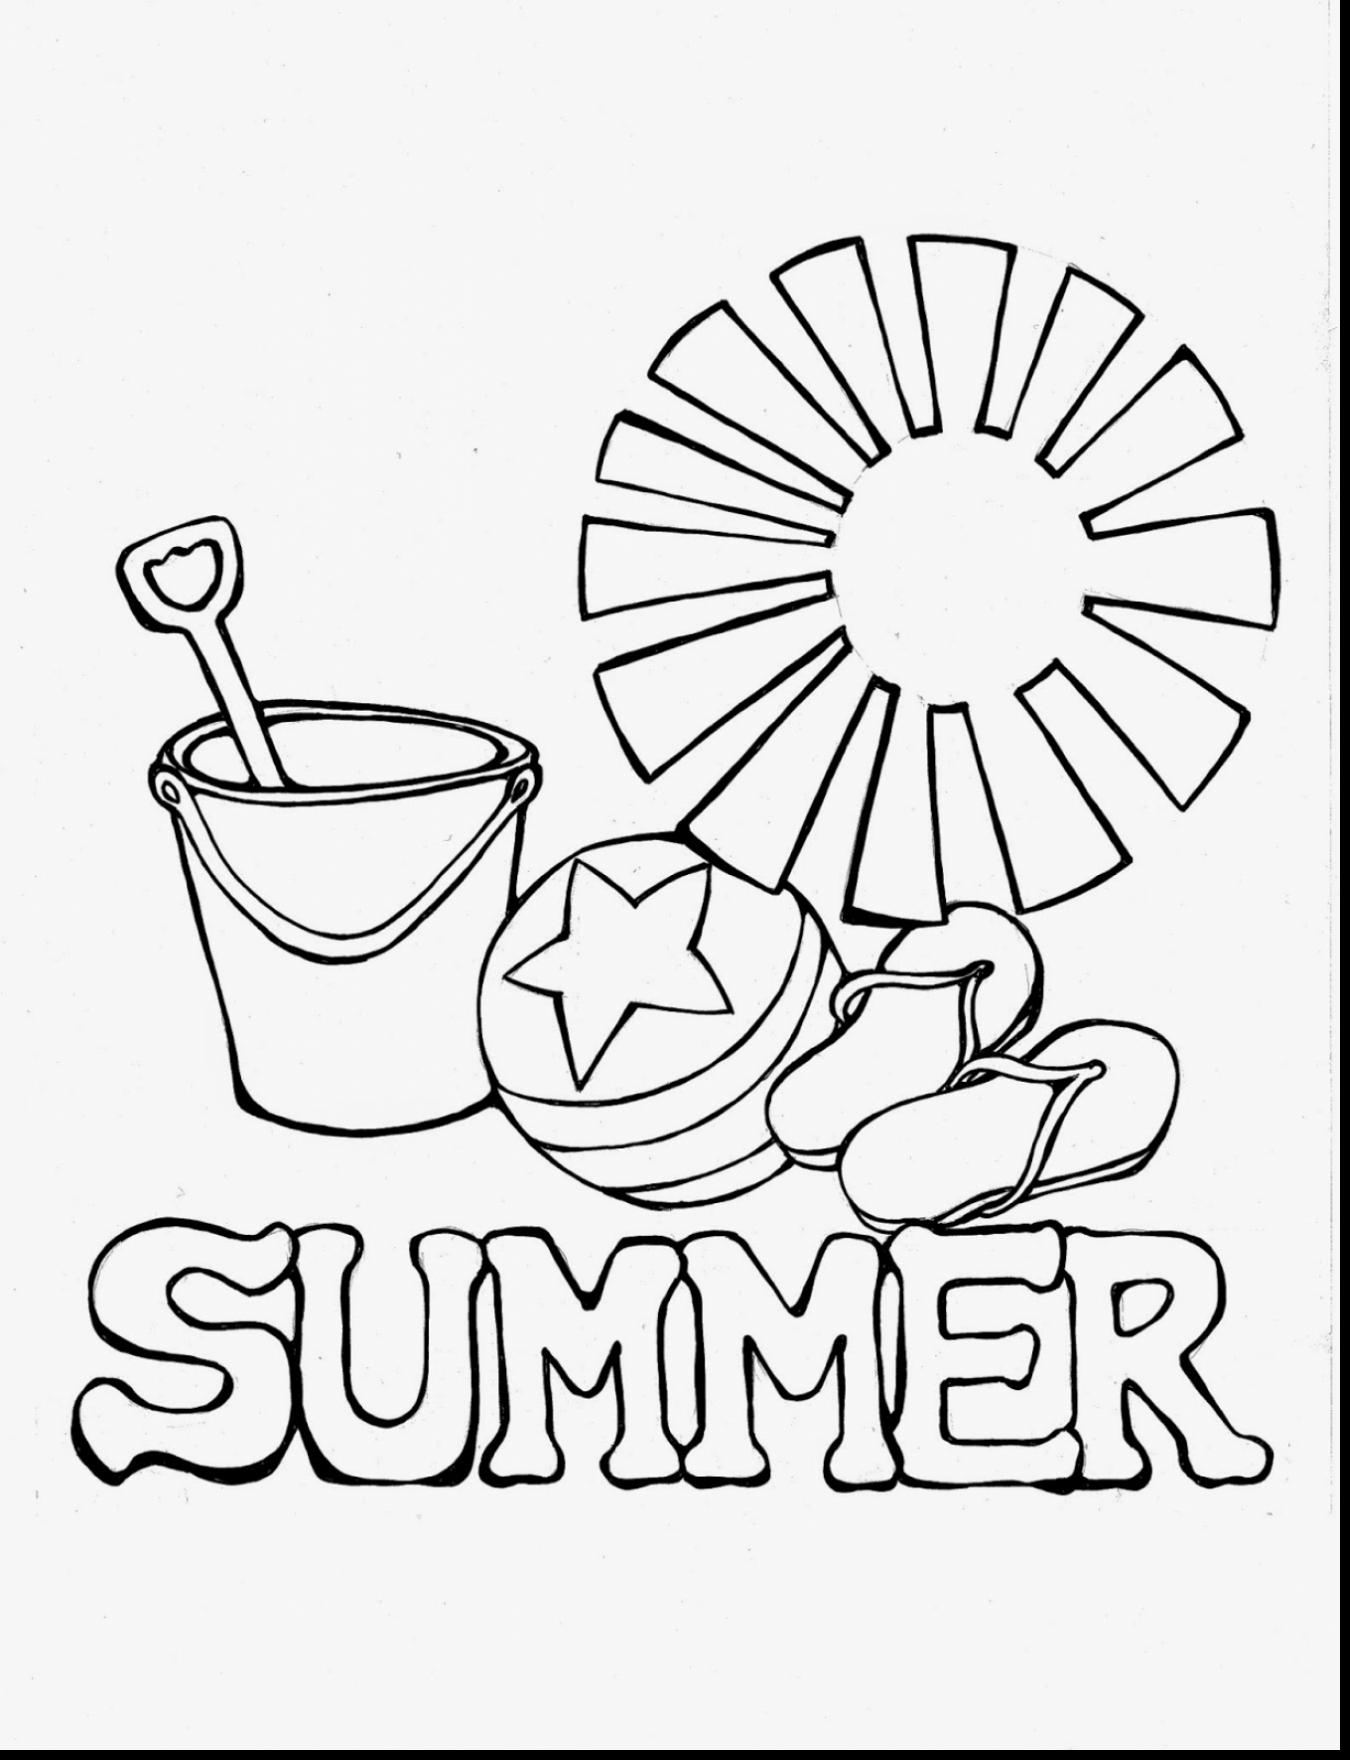 Summer Reading Coloring Pages  to Print 11n - Free For kids